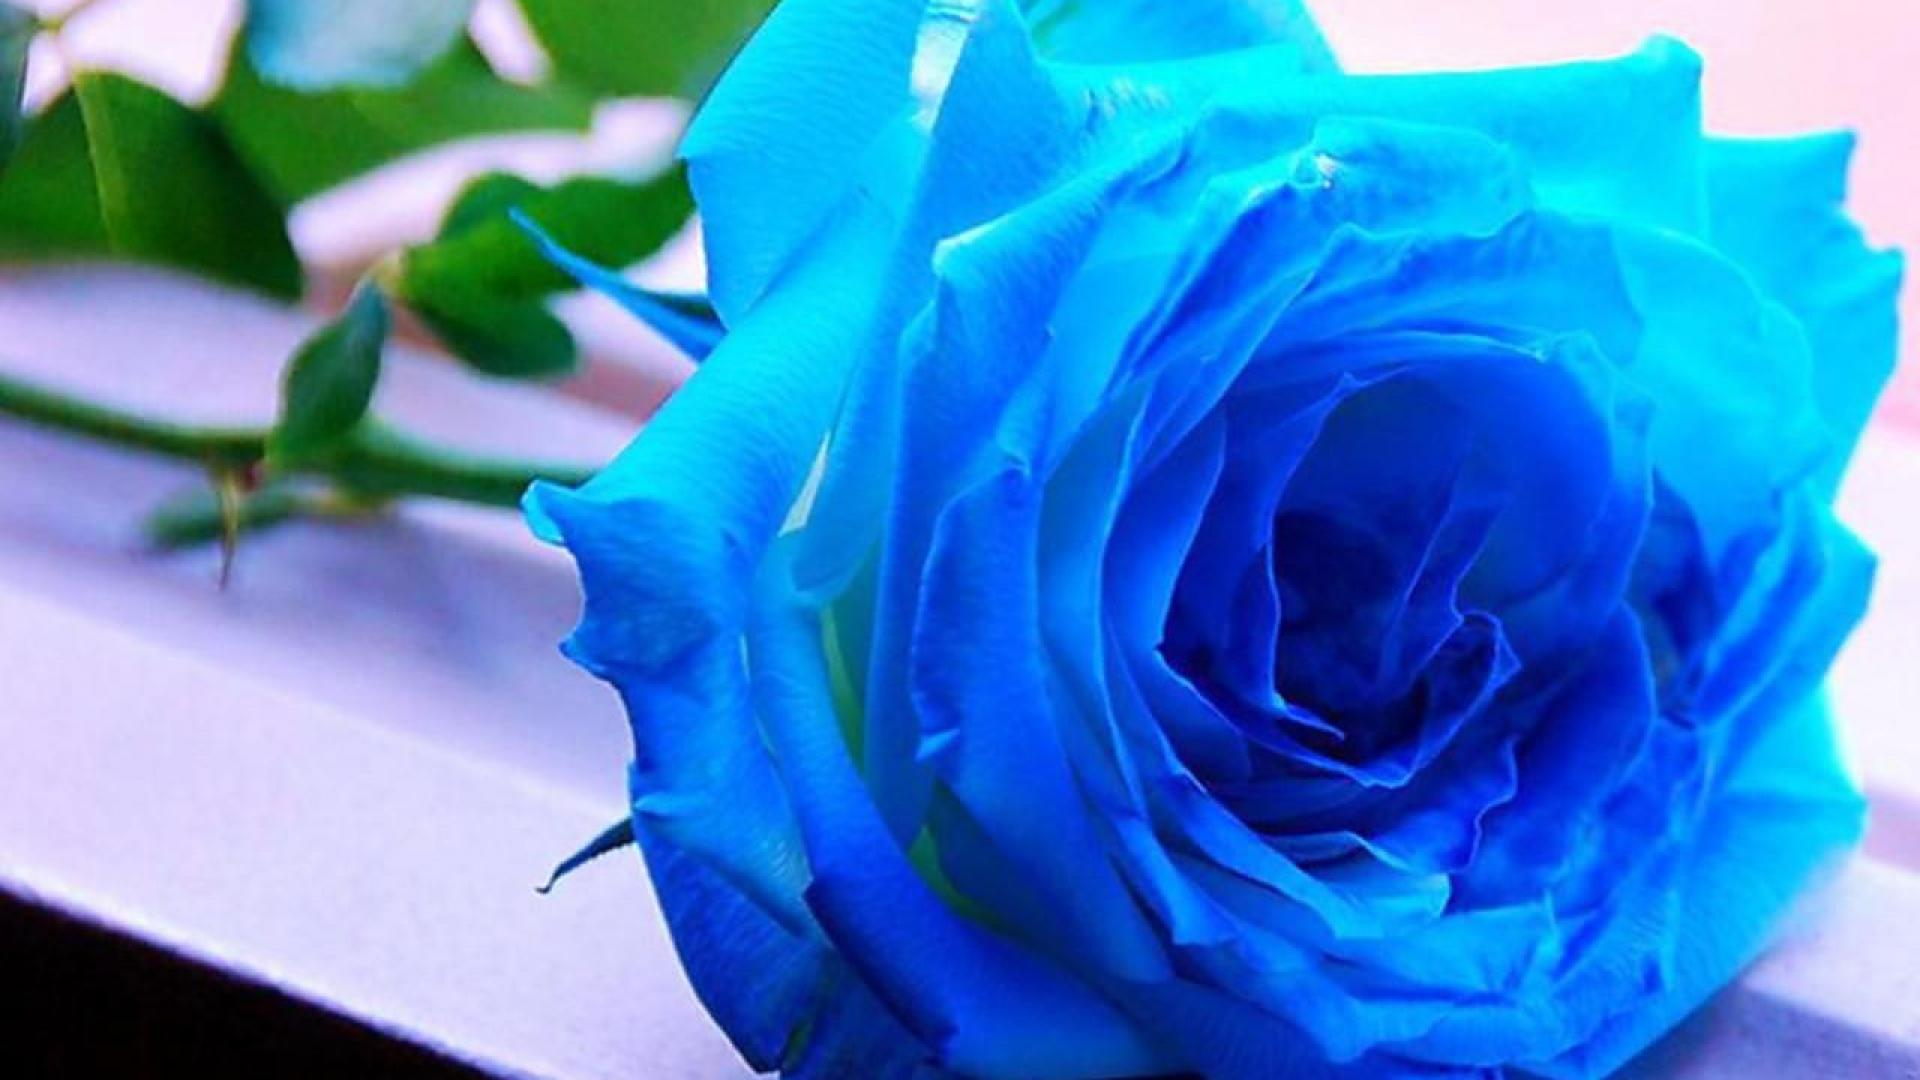 Black And Blue Rose Wallpapers Top Free Black And Blue Rose Backgrounds Wallpaperaccess